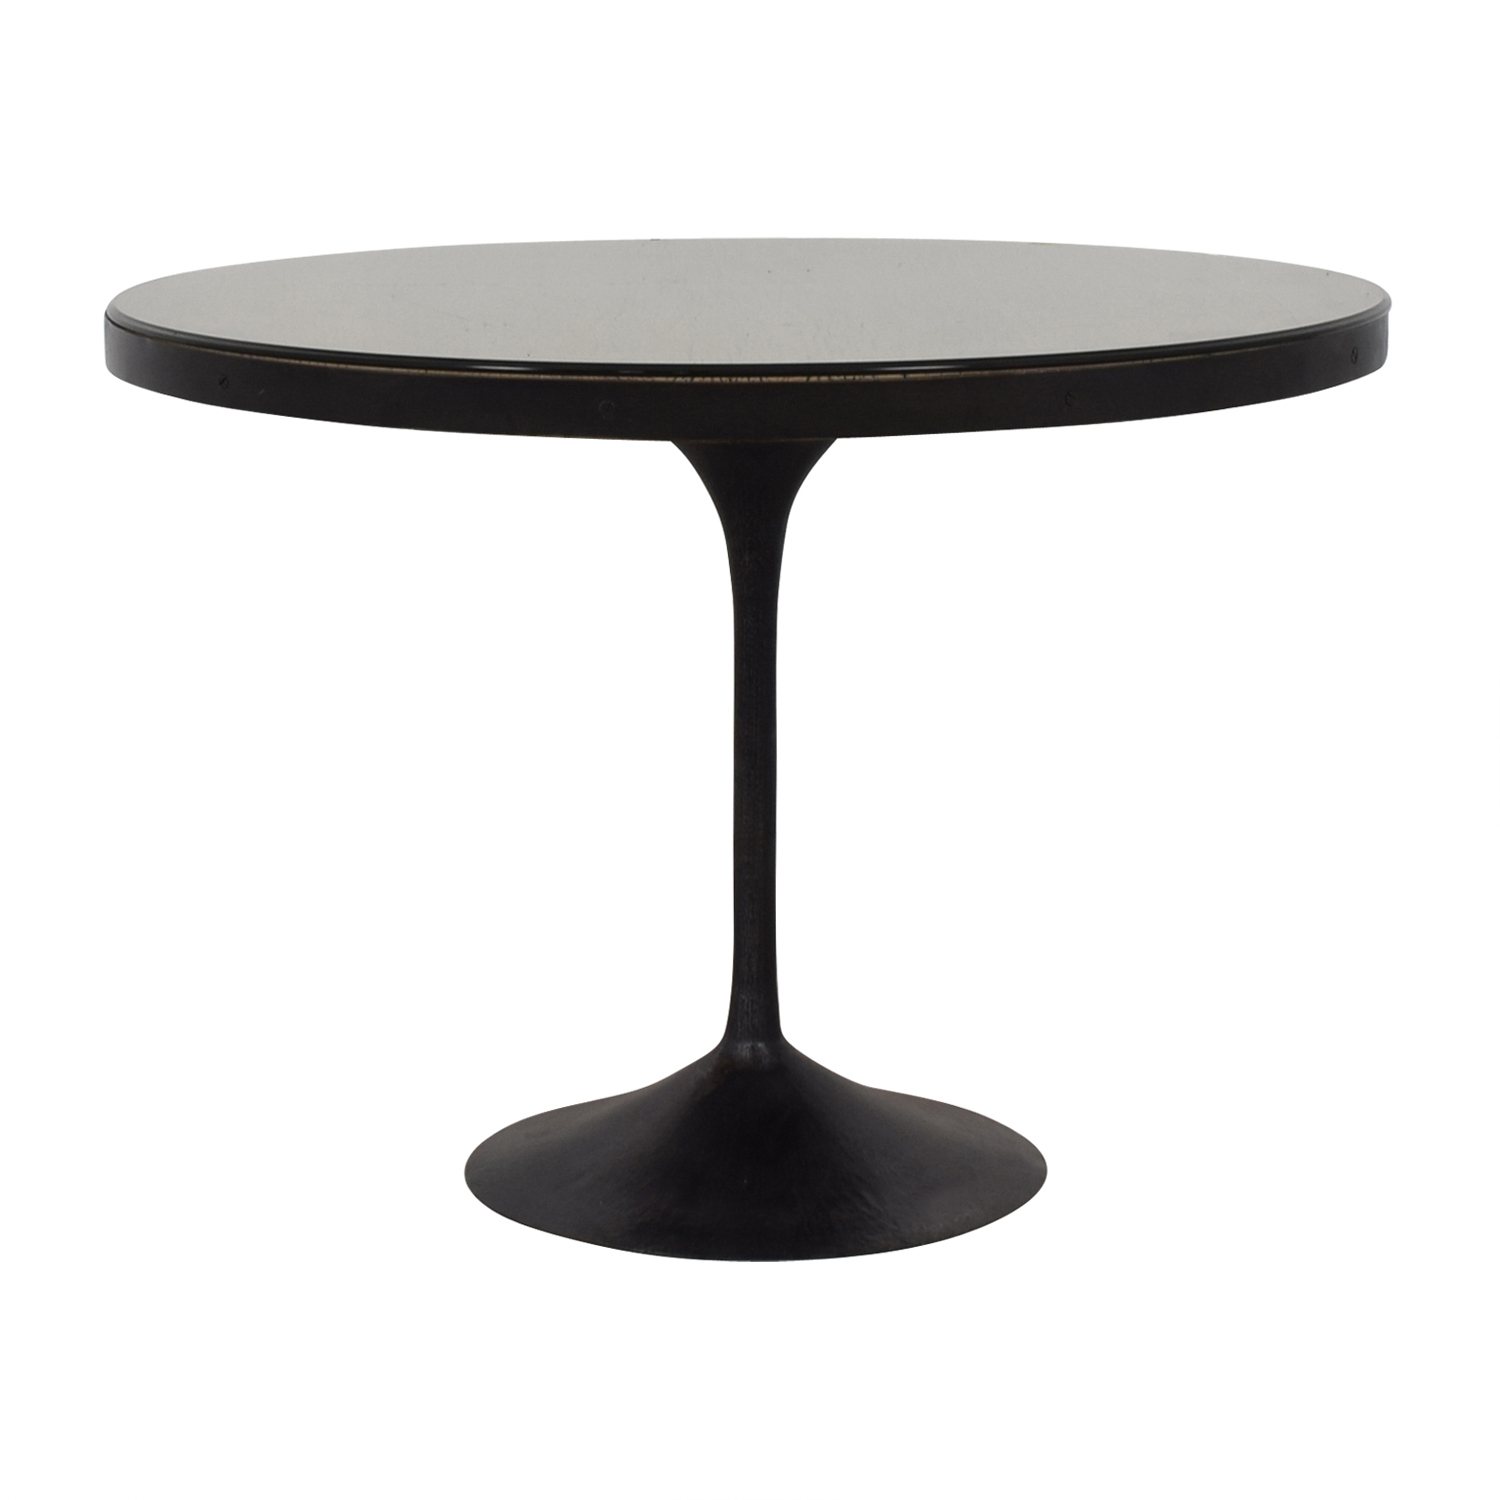 Restoration Hardware Restoration Hardware Aero Round Dining Table on sale